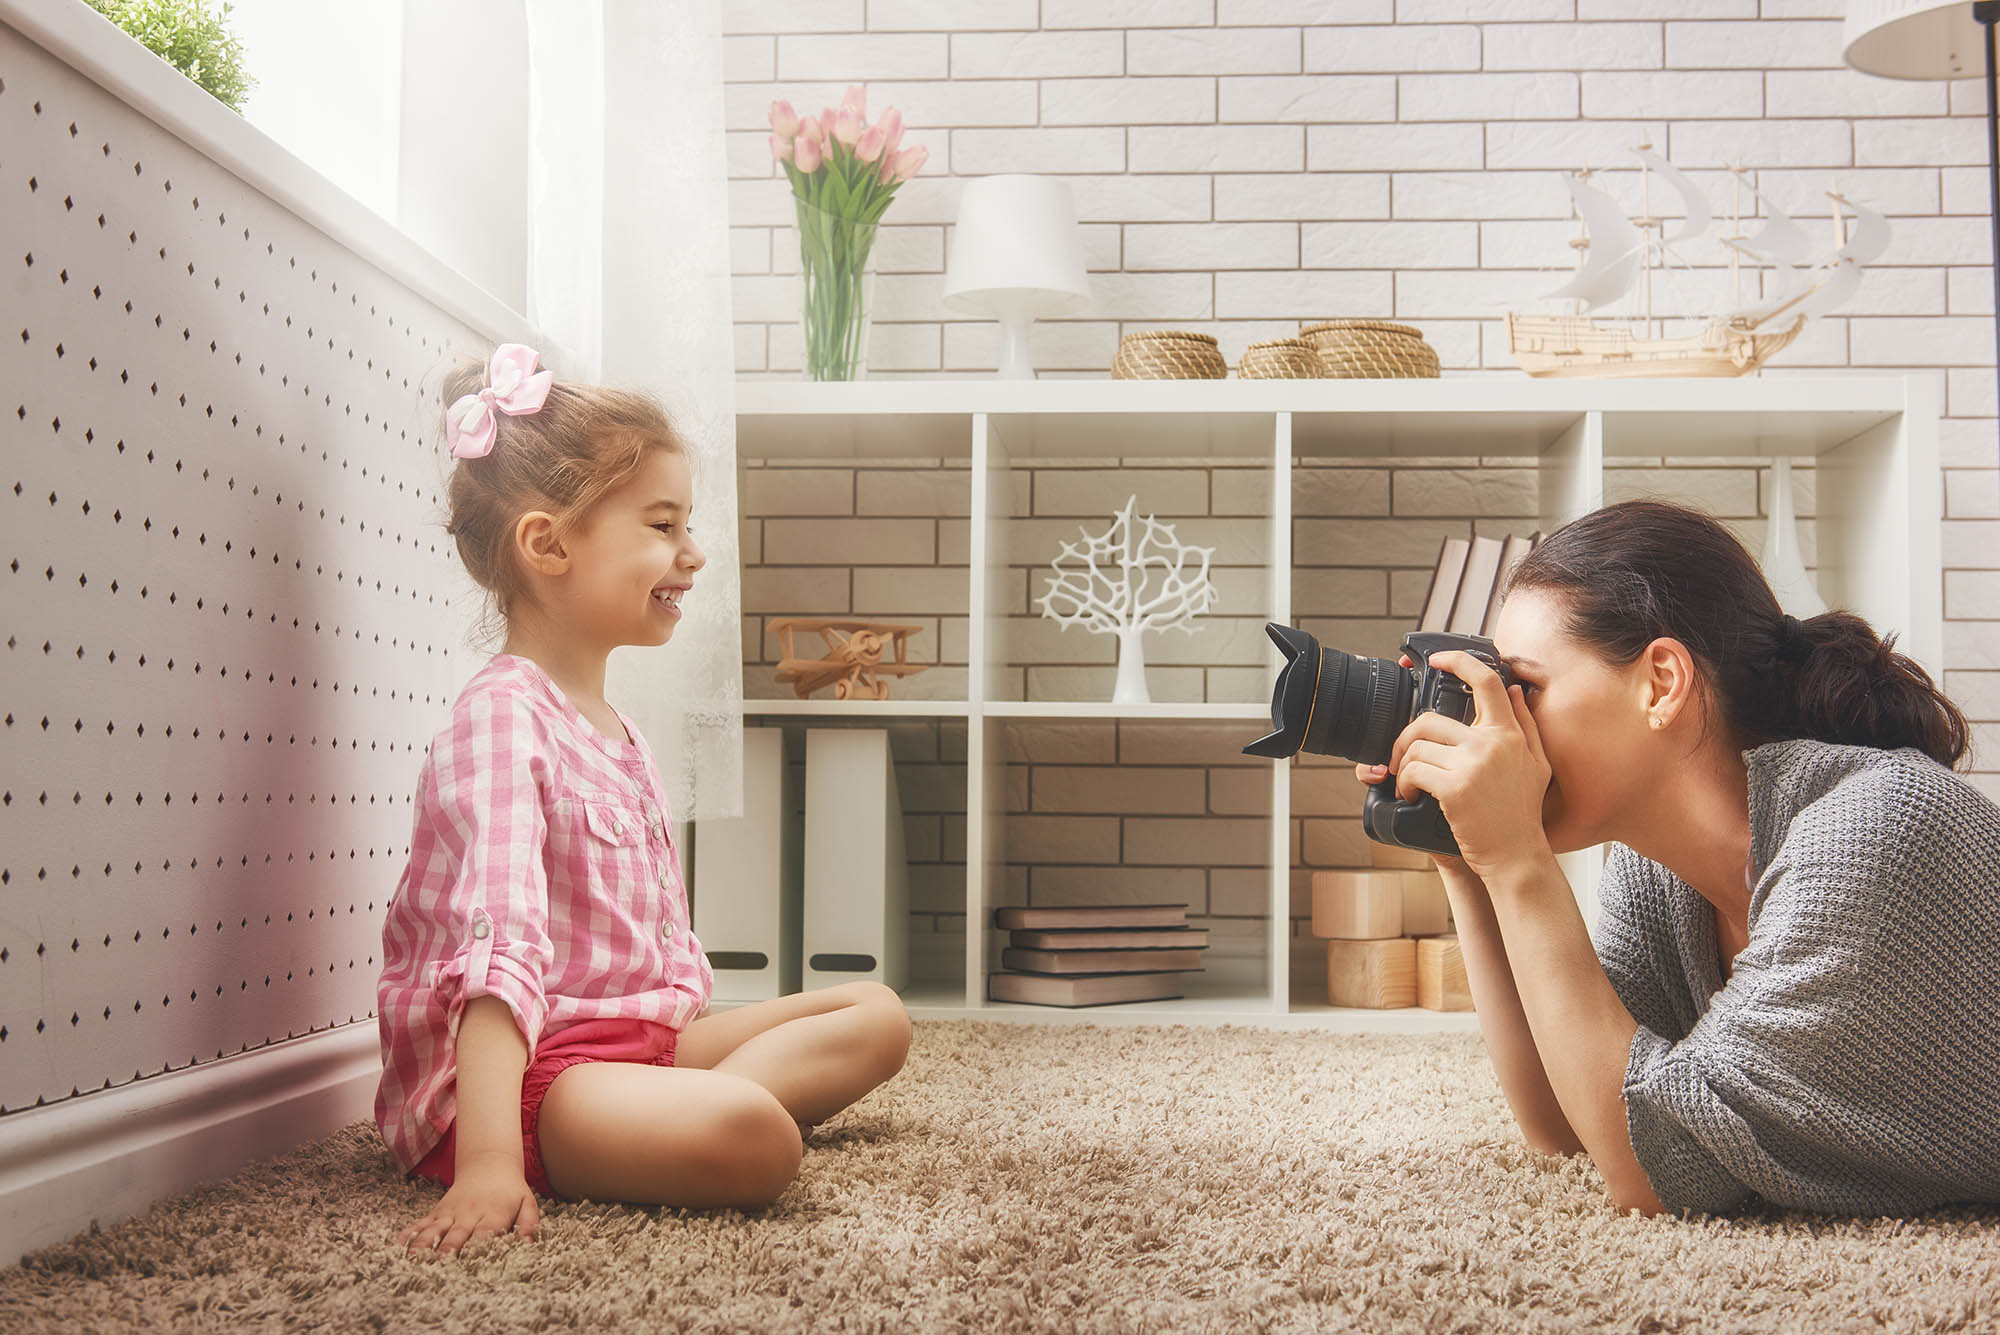 mother taking a portrait of her daughter iphotography